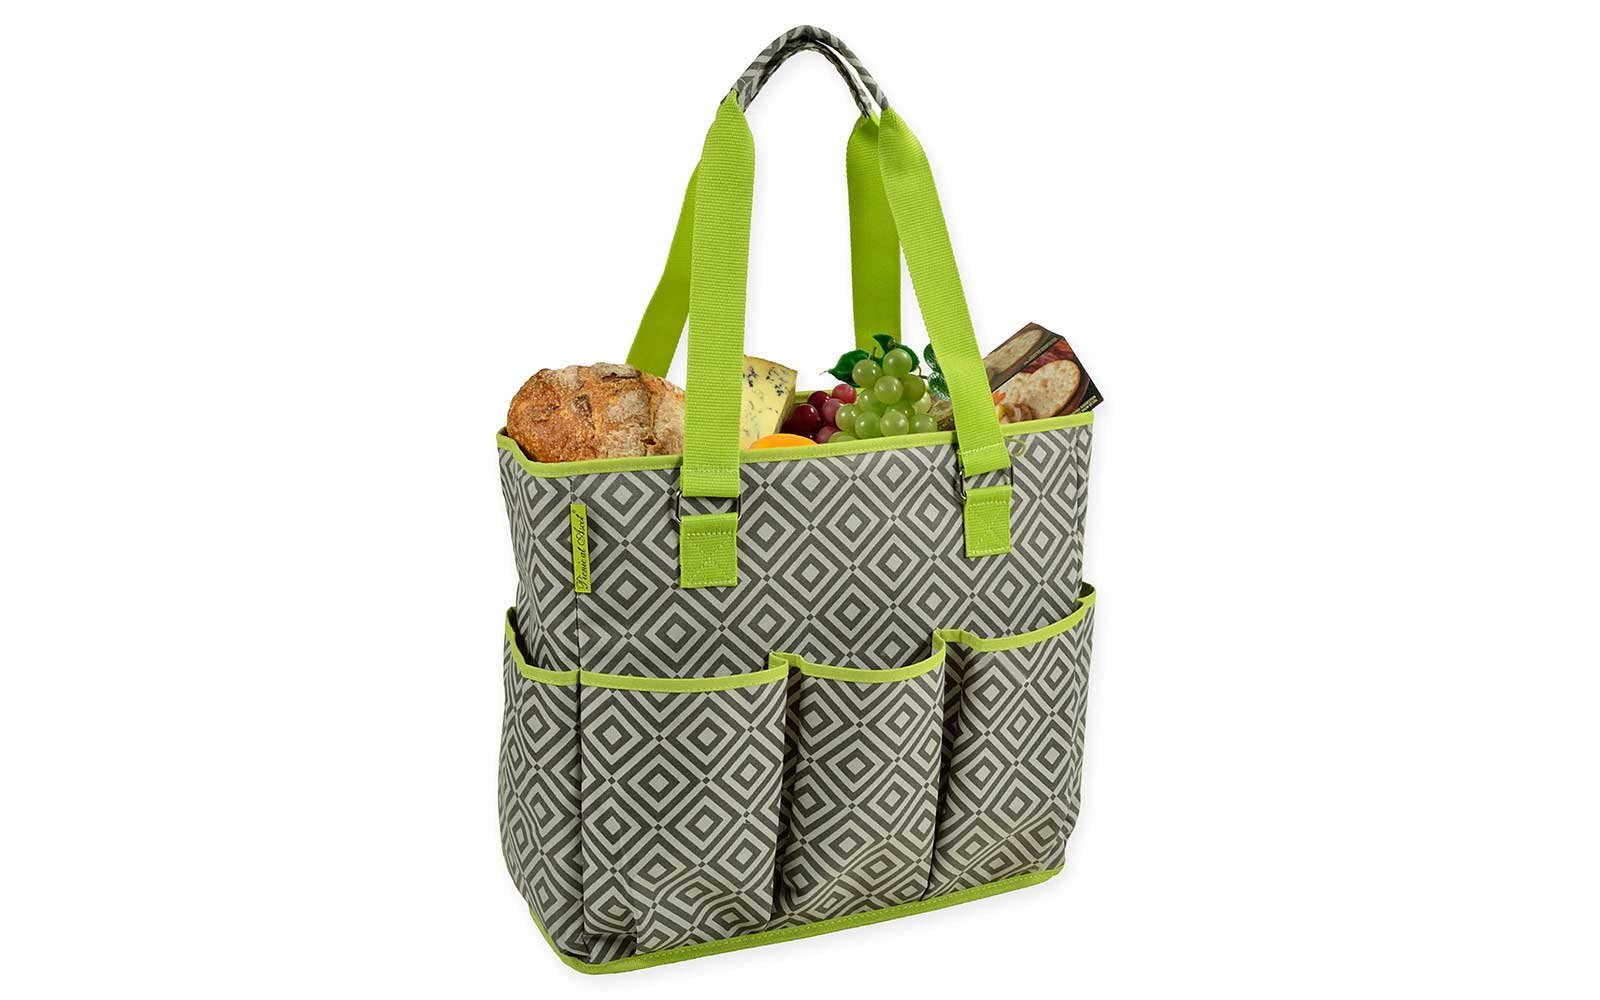 Colorful Bags for Picnics